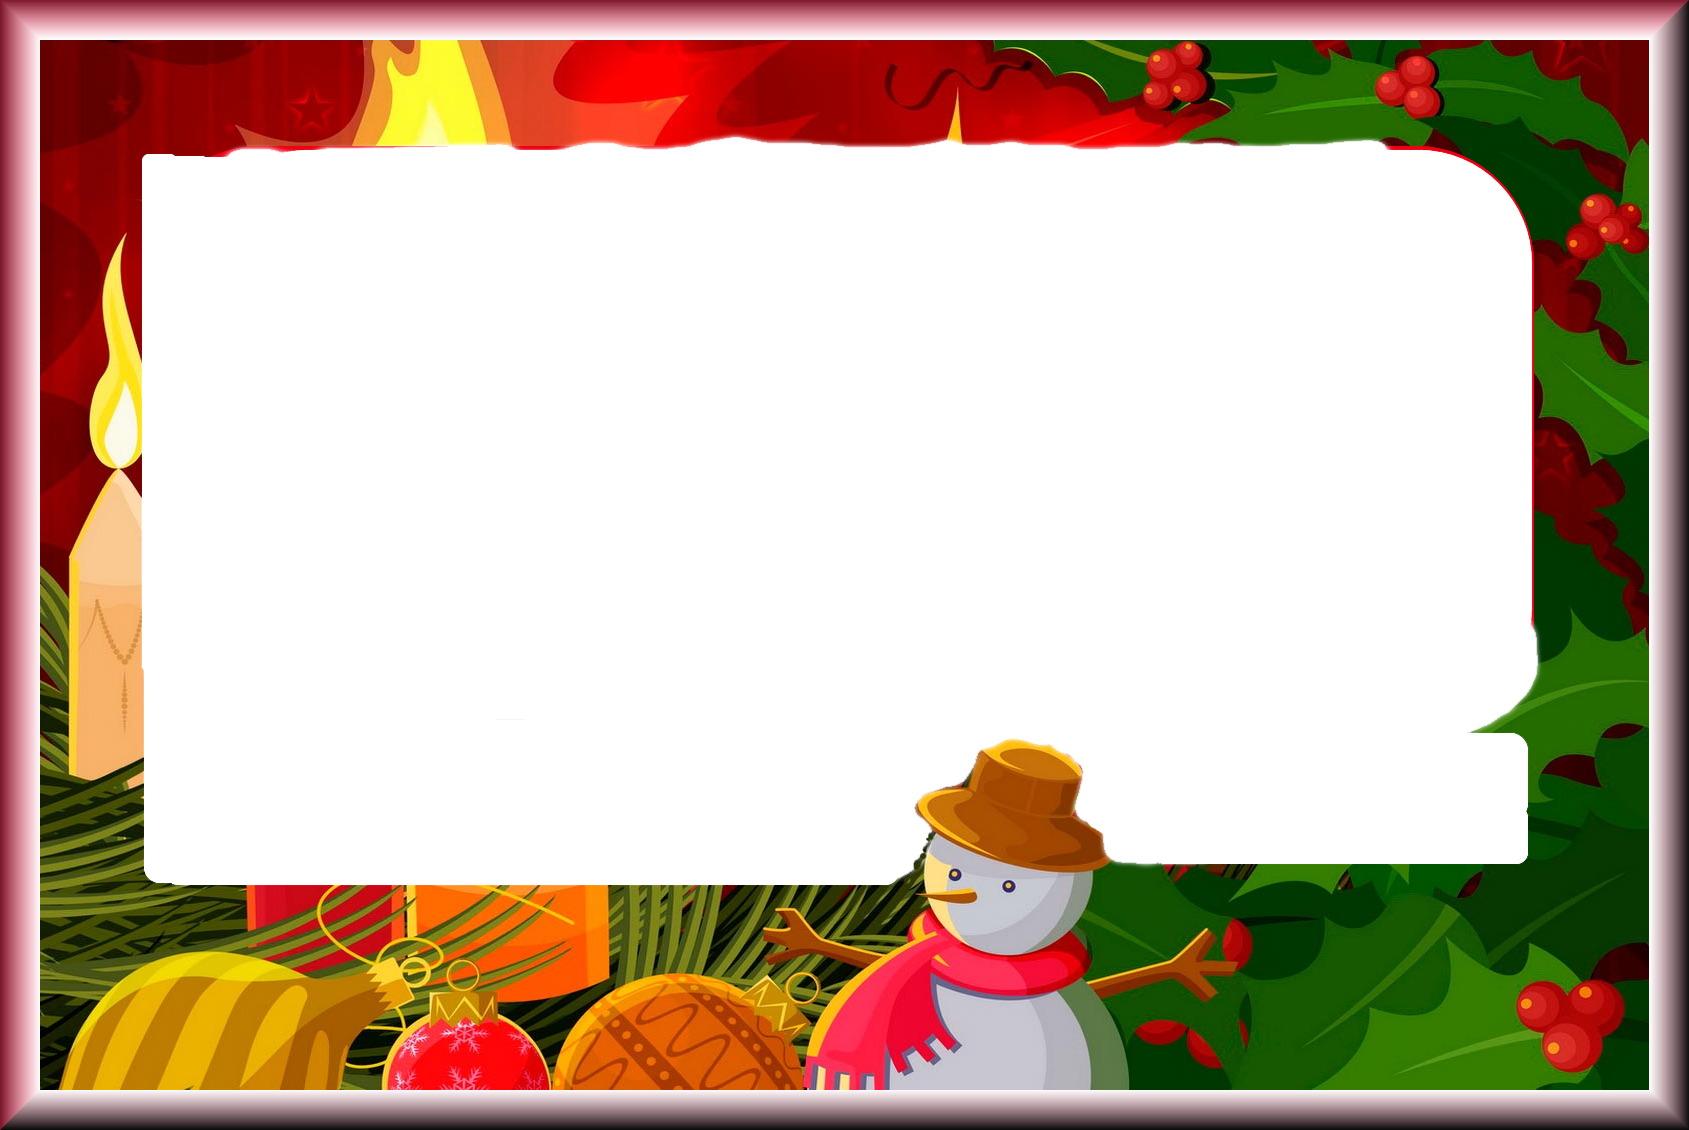 Xmas Frame Png - Free Icons and PNG Backgrounds